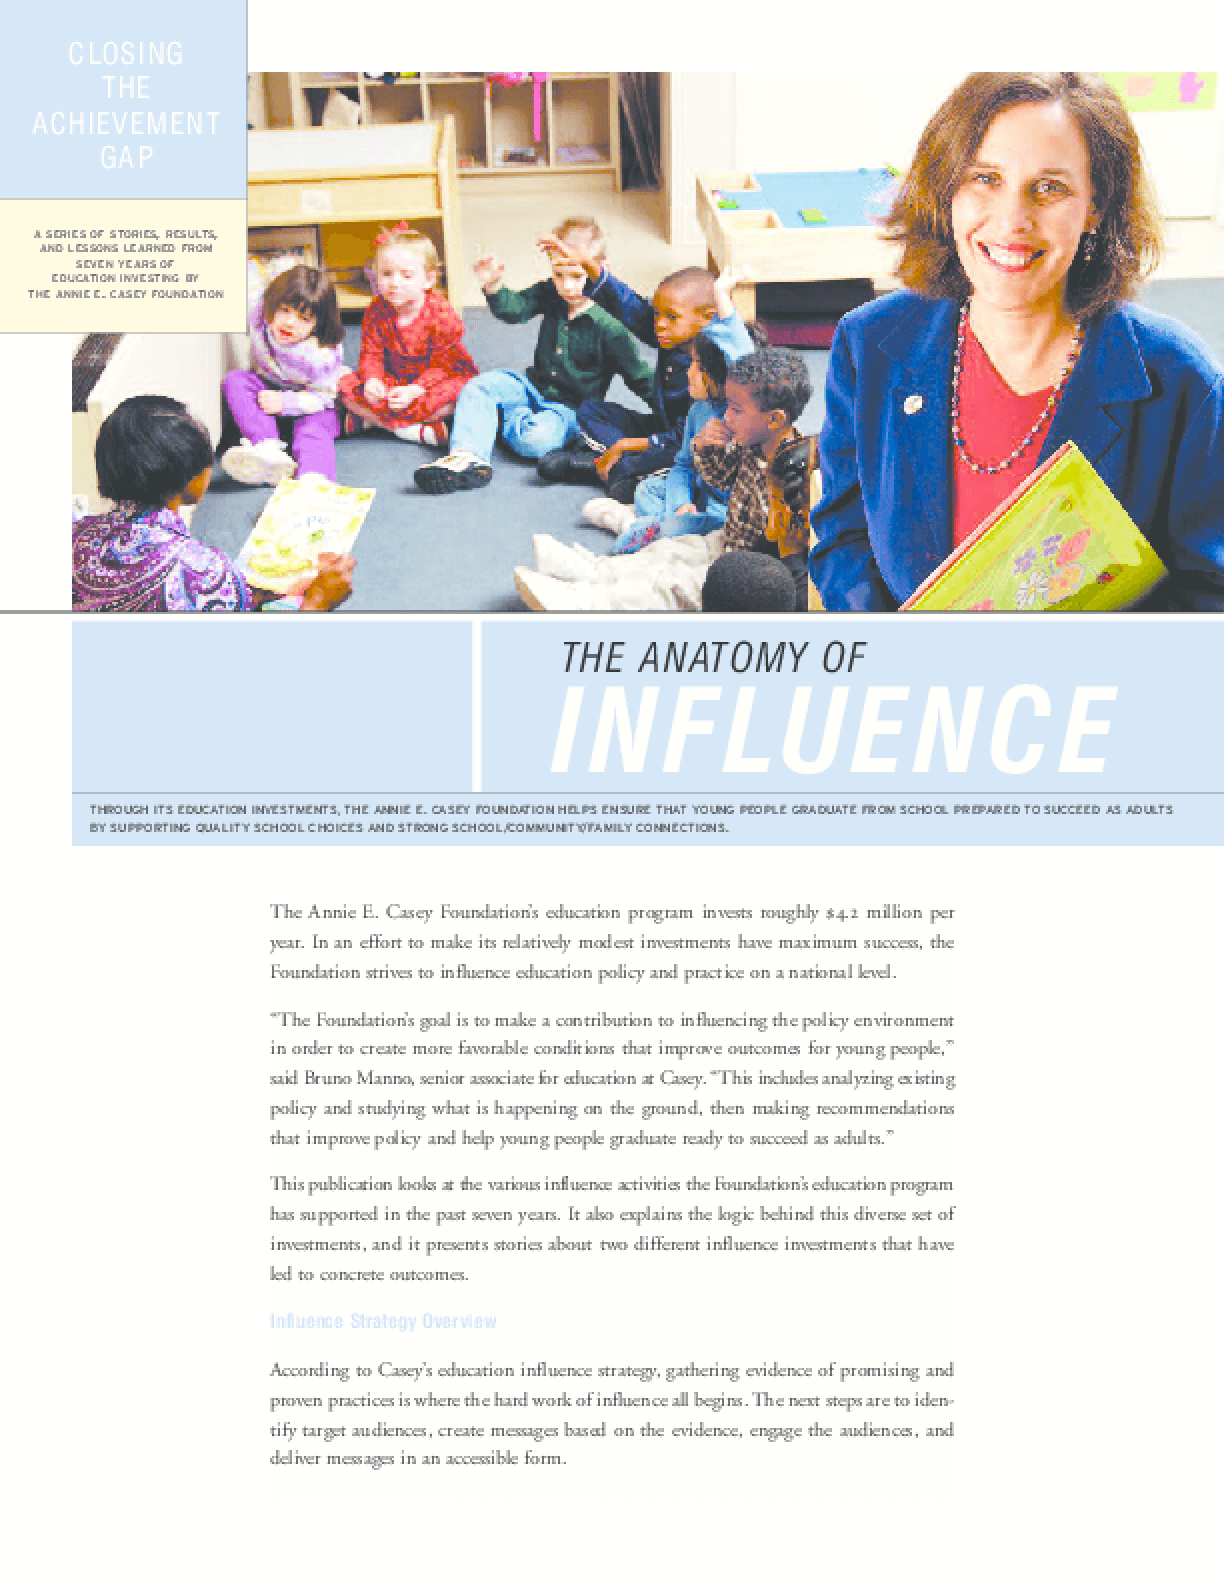 Closing the Achievement Gap: The Anatomy of Influence